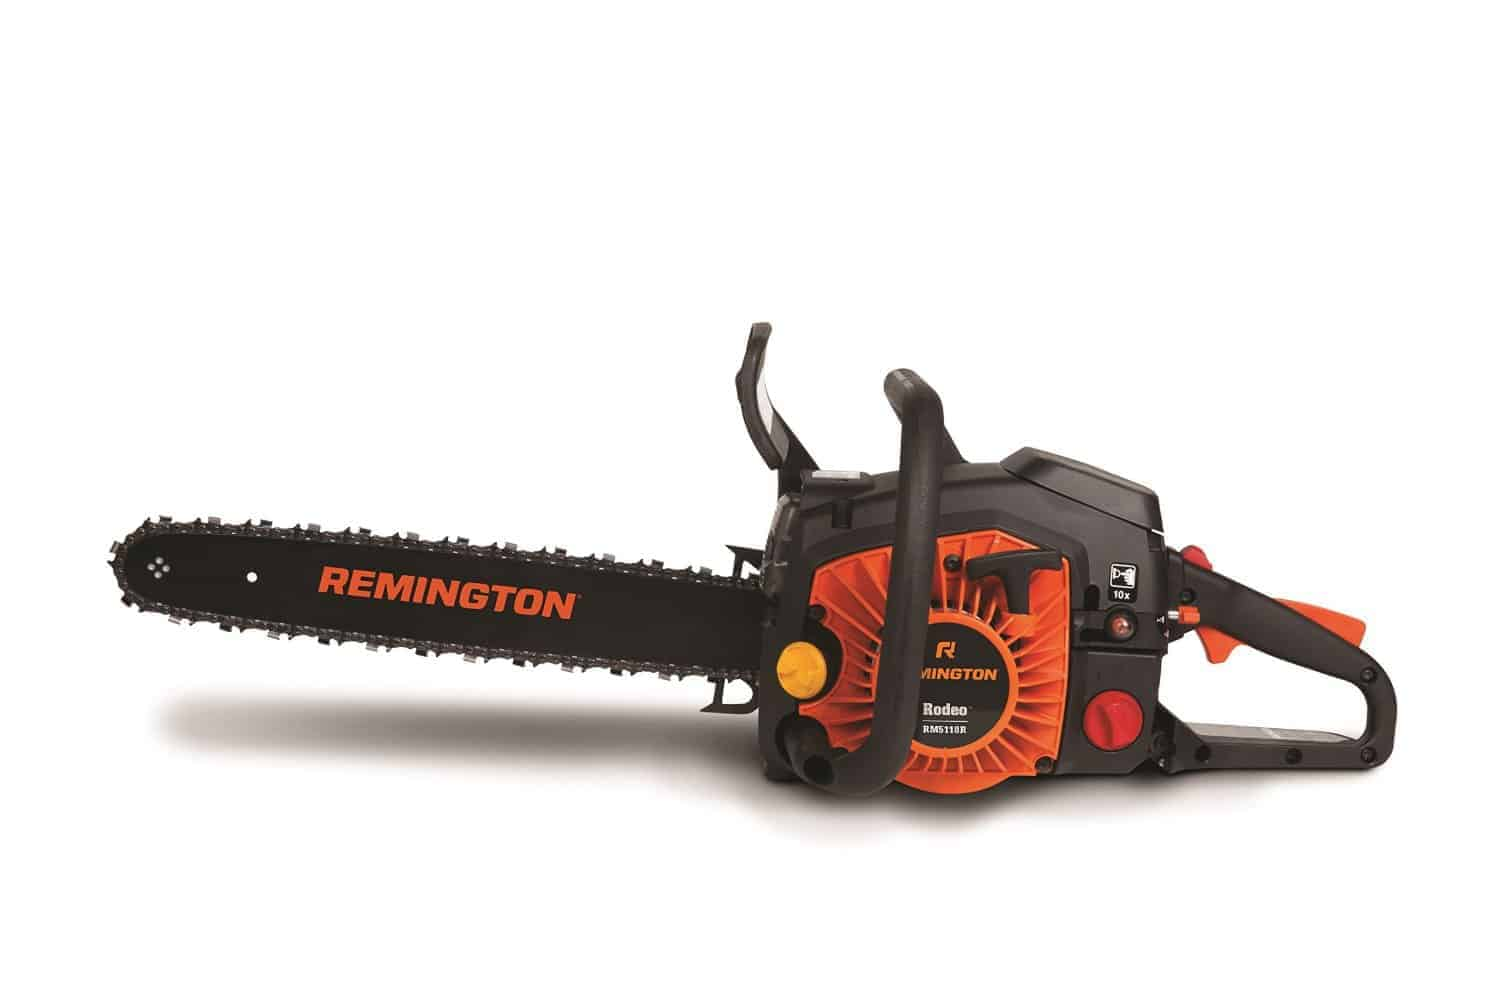 Remington RM5118R Rodeo 18-Inch Gas Chainsaw